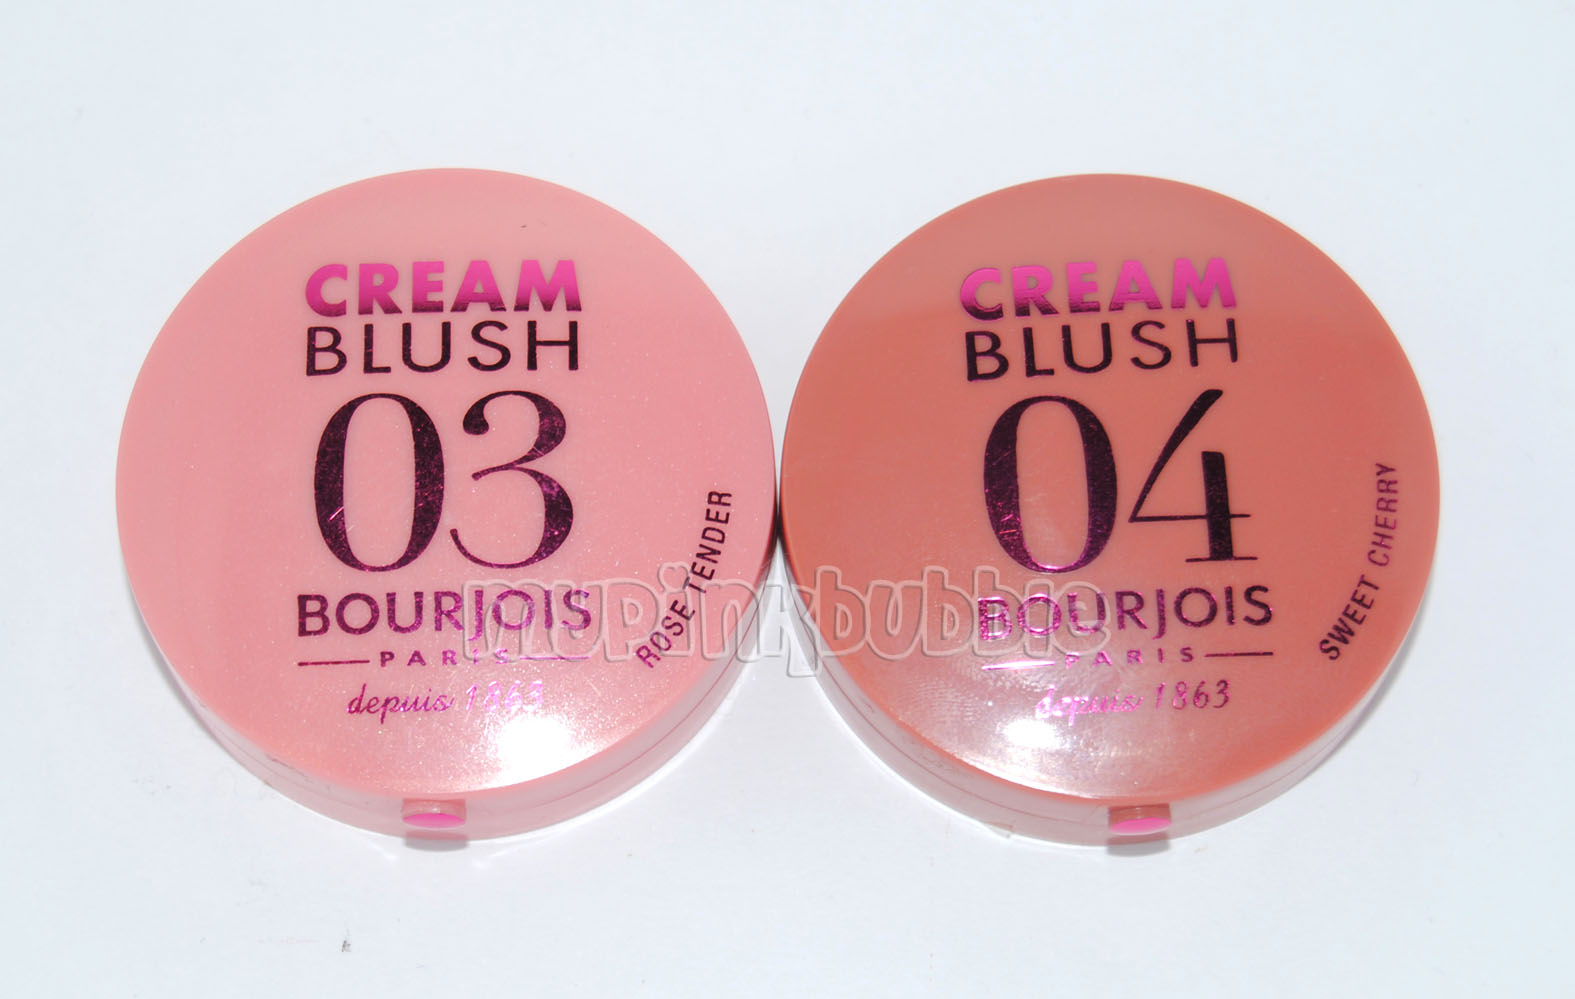 Cream blush bourjois